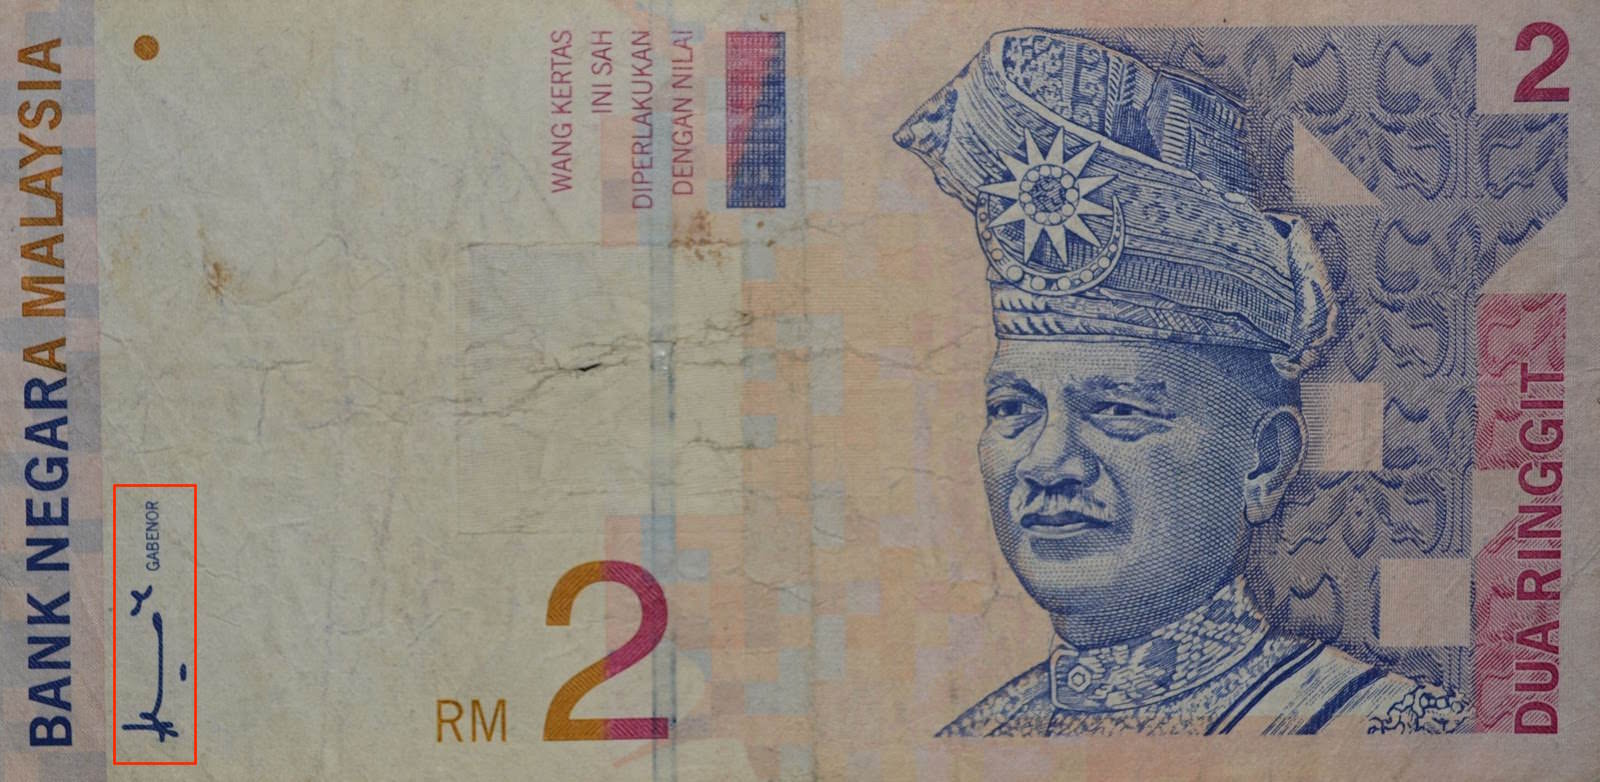 Image from Ringgit Plus